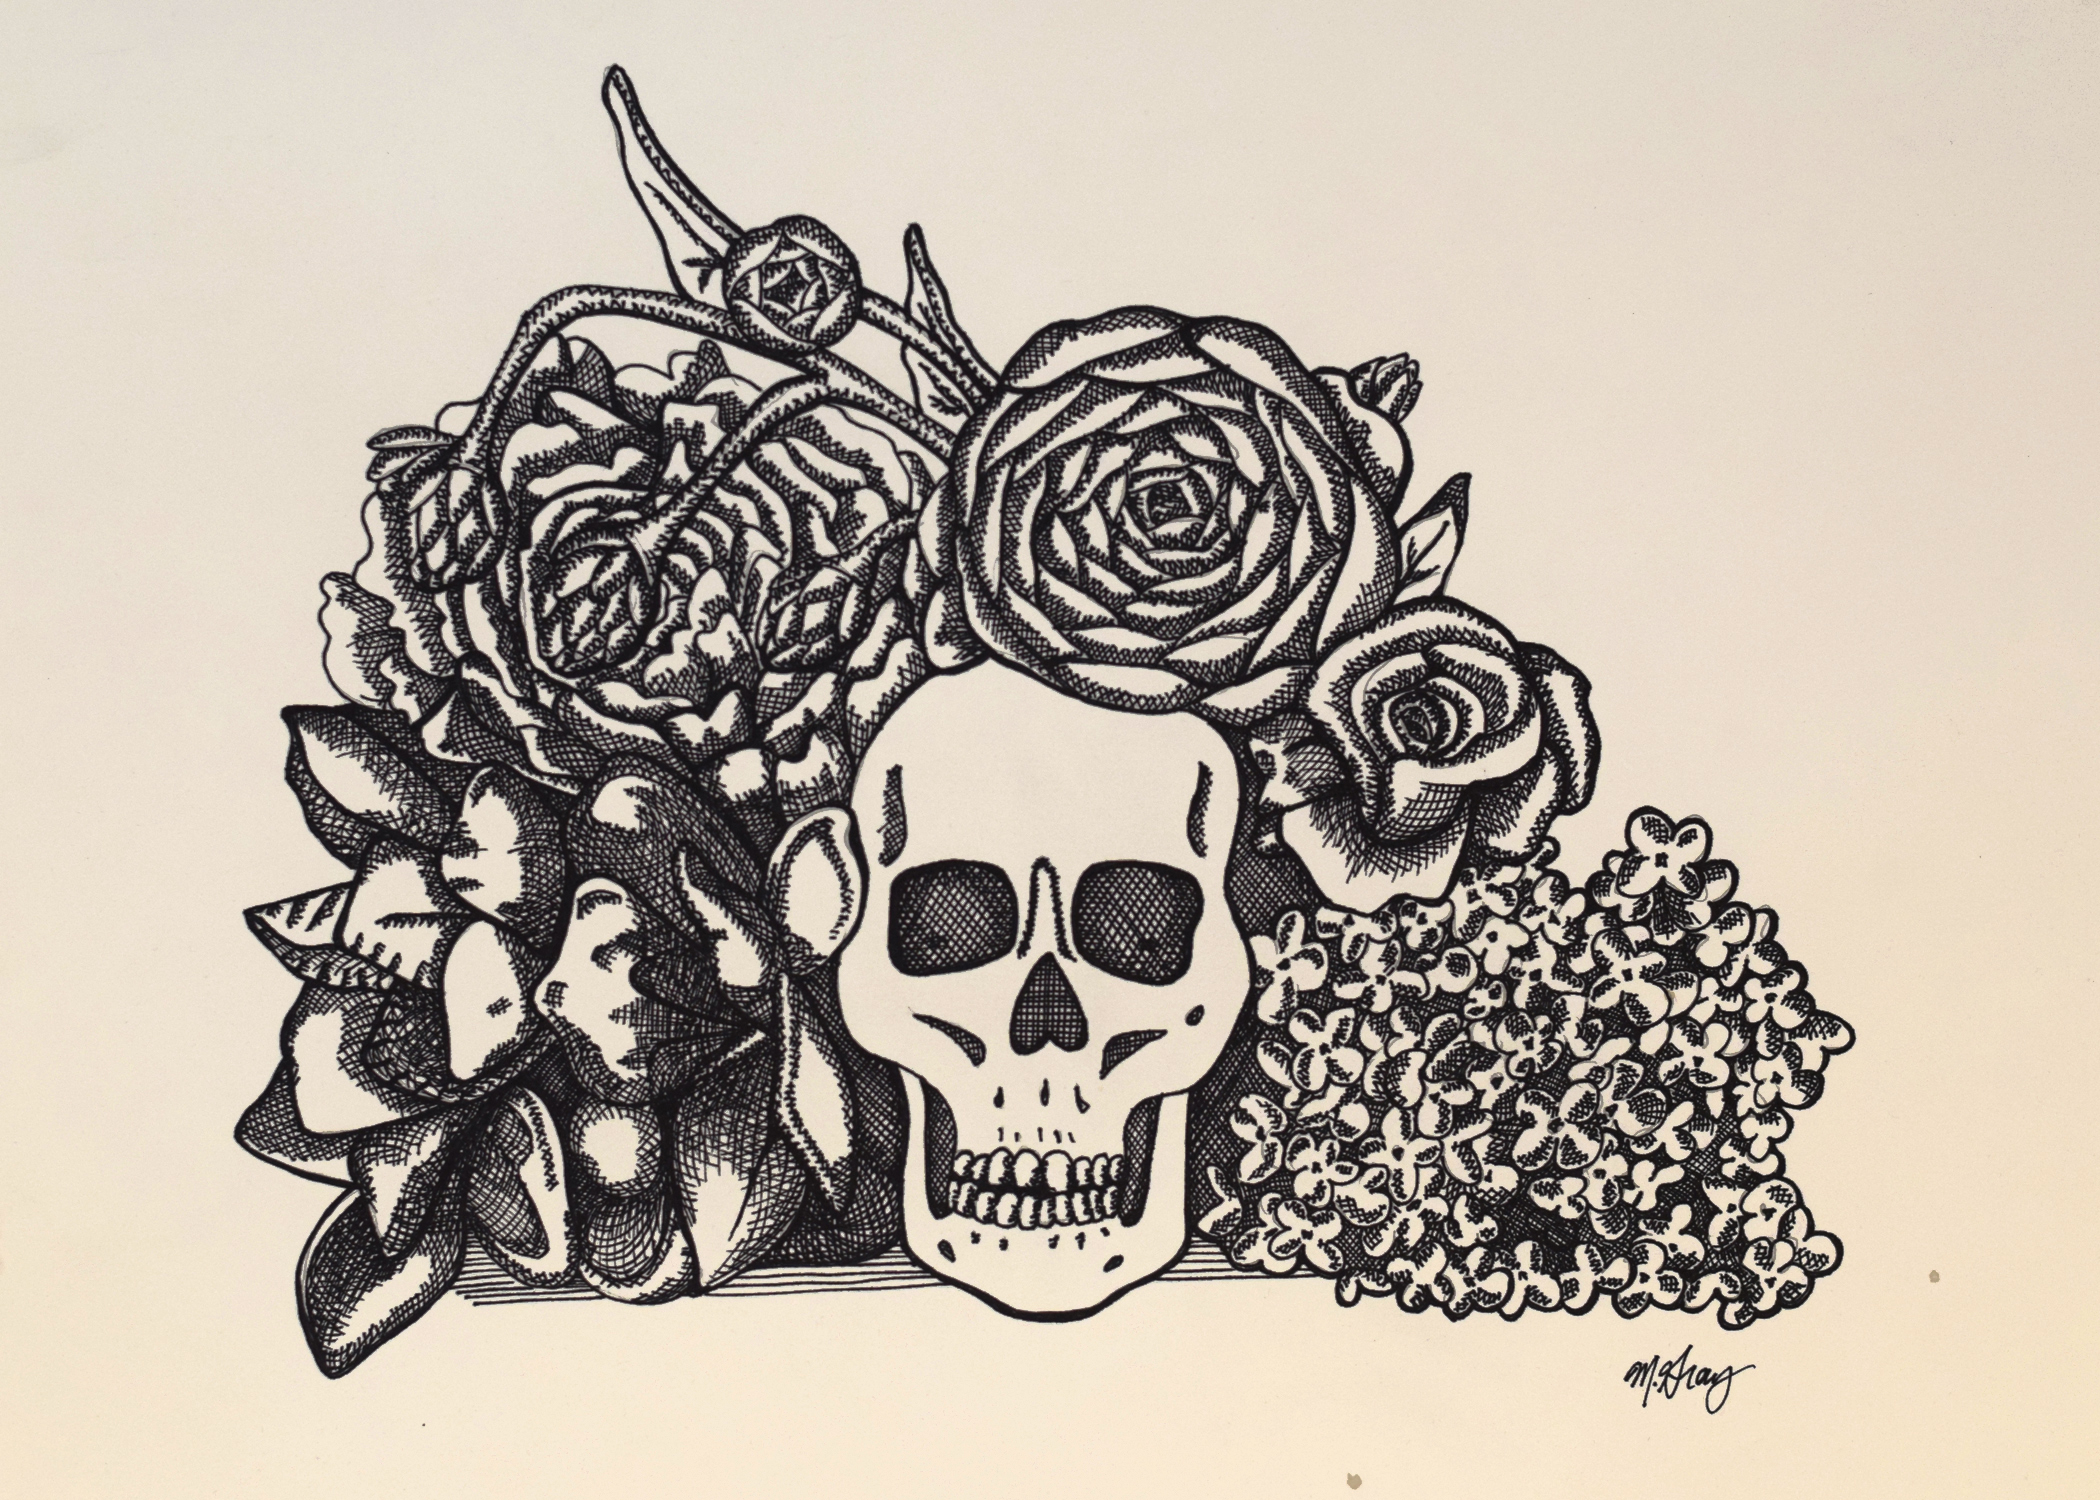 Ink on paper - crosshatching, 11 in. x 15 in.